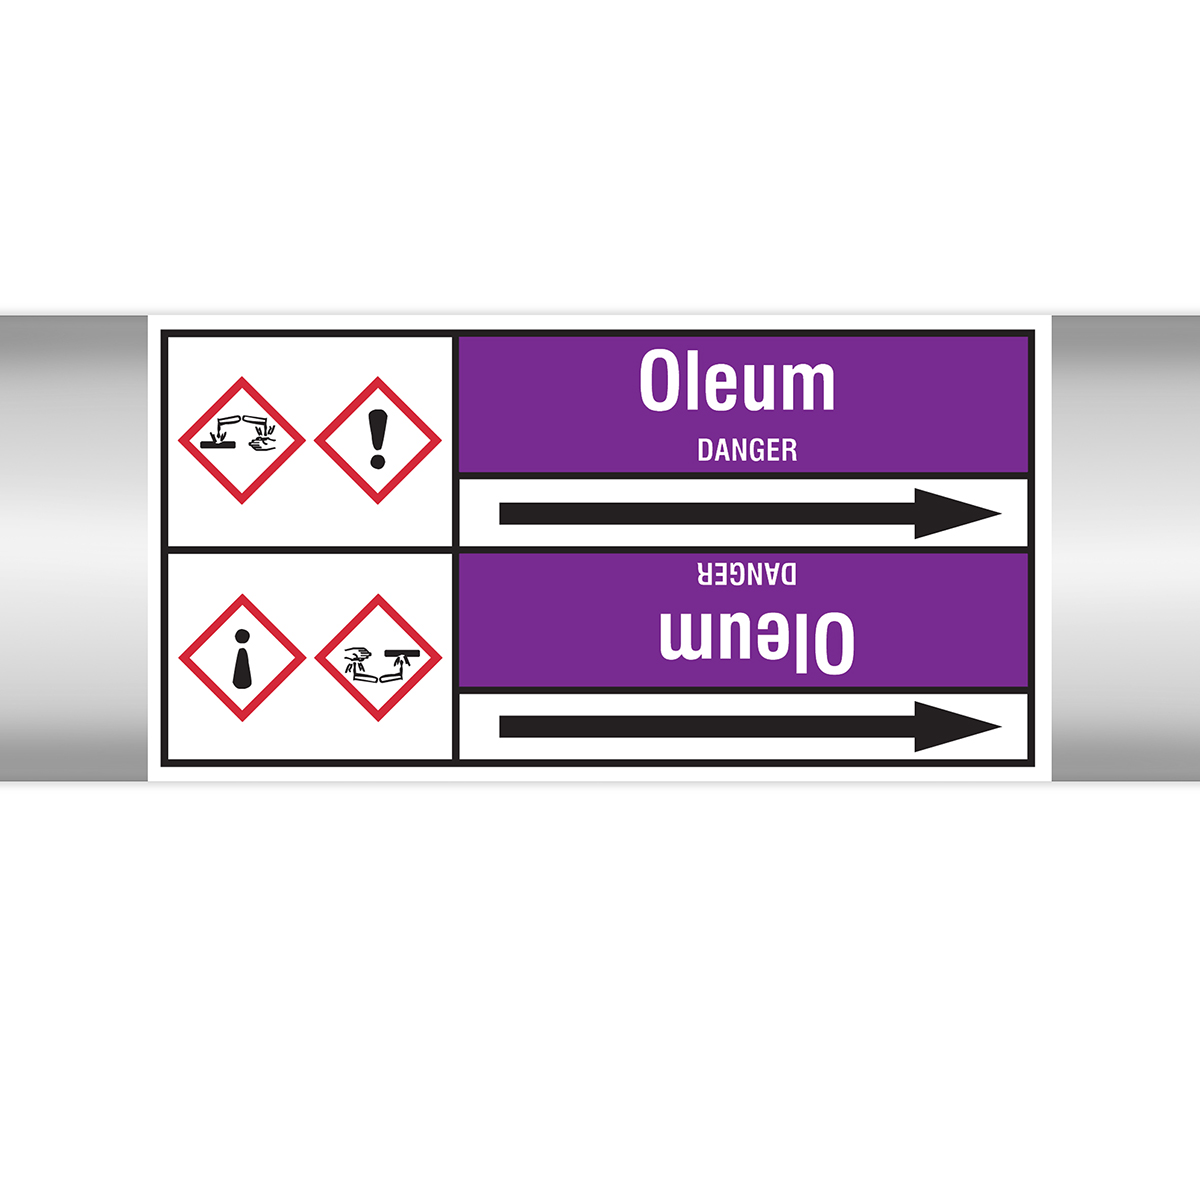 Roll Form Liner-less Type 2 - Oleum